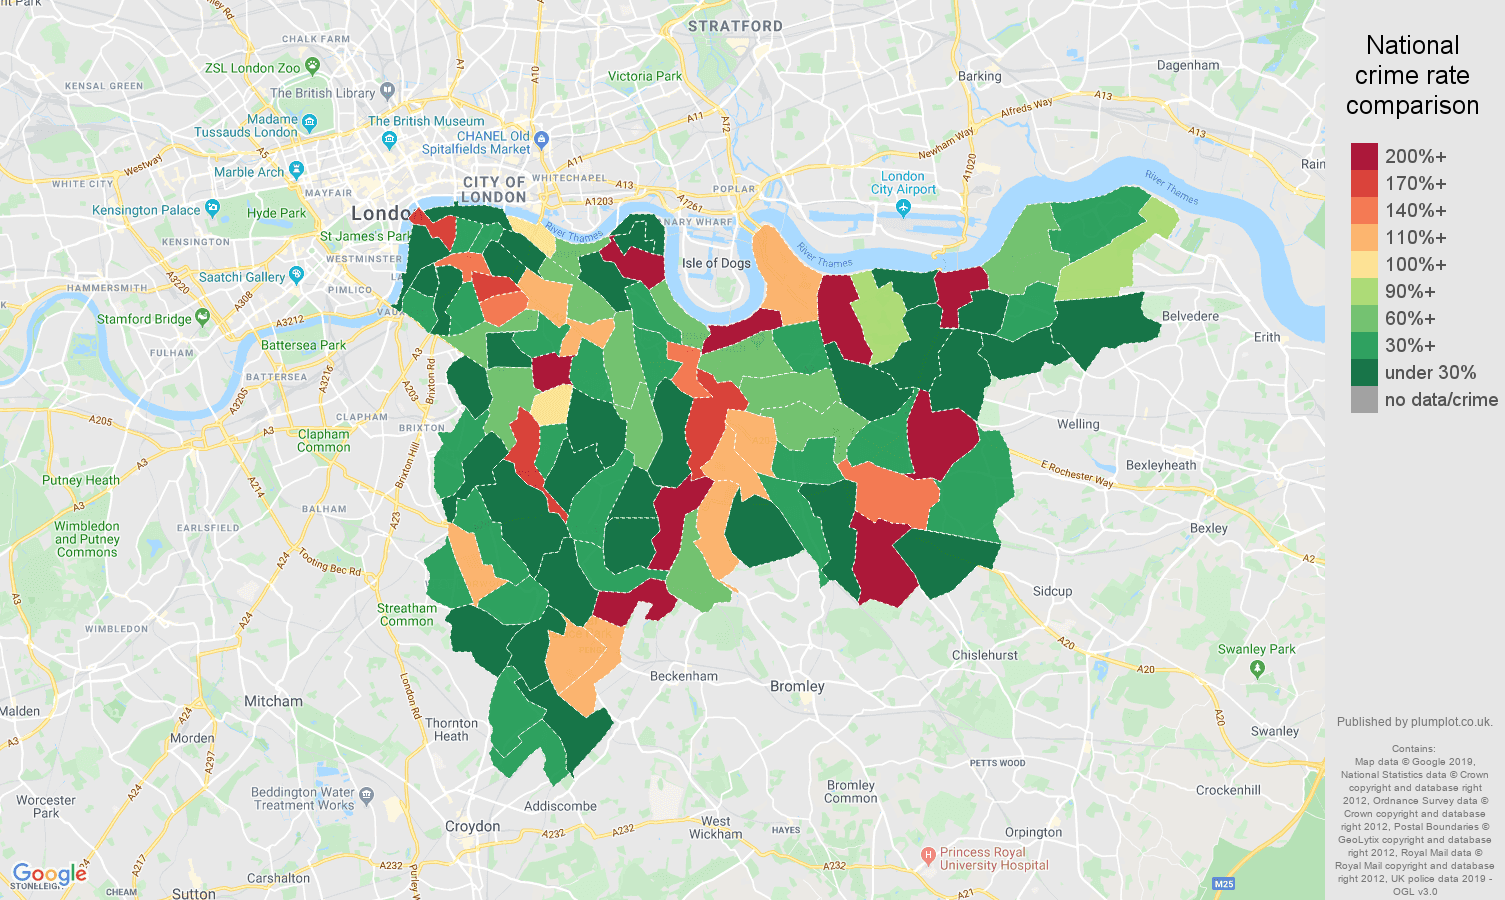 south east london shoplifting crime rate comparison map